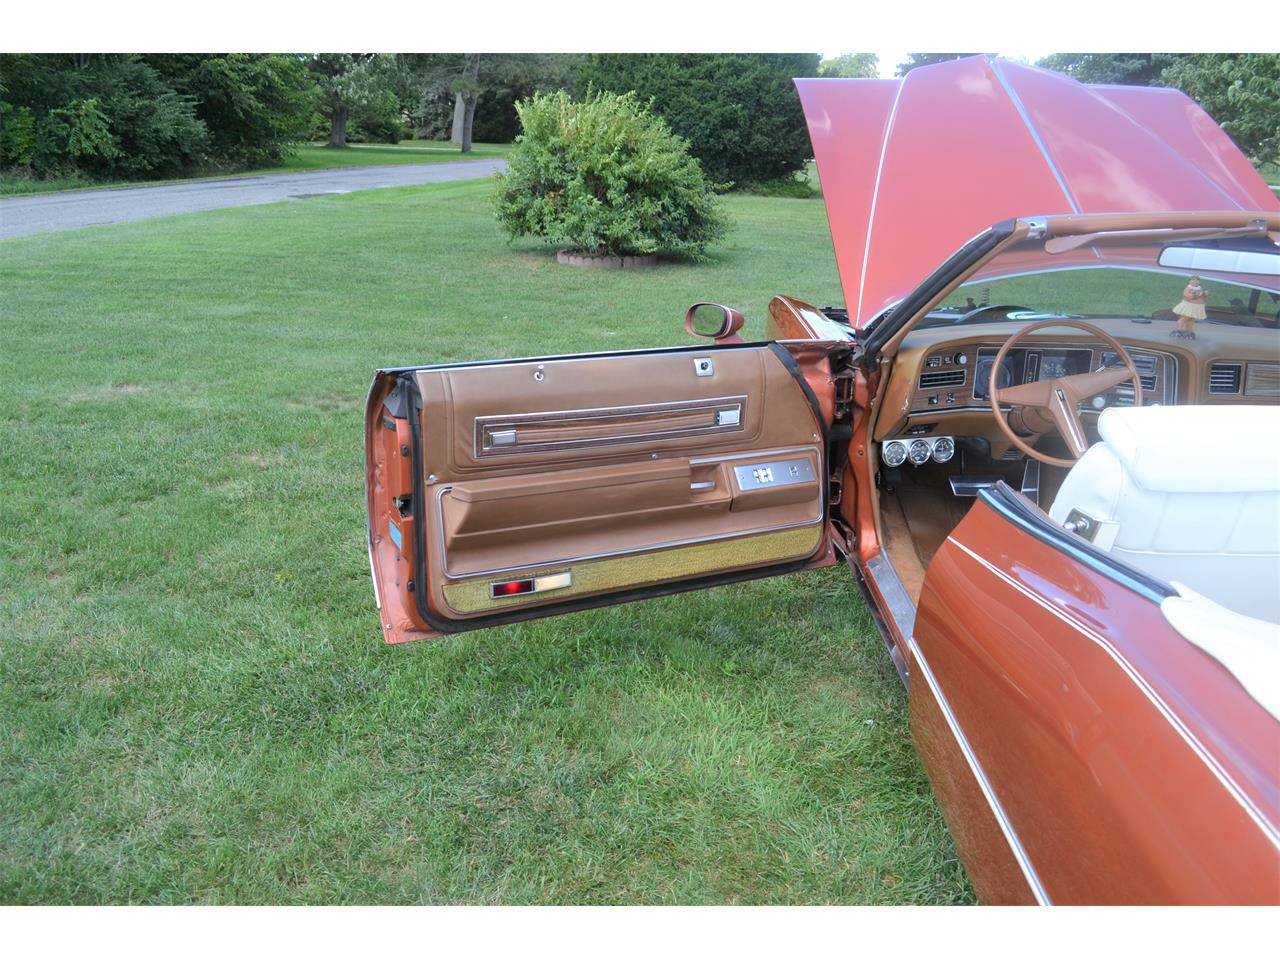 Large Picture of '75 Pontiac Grand Ville - $17,500.00 Offered by a Private Seller - OI2B